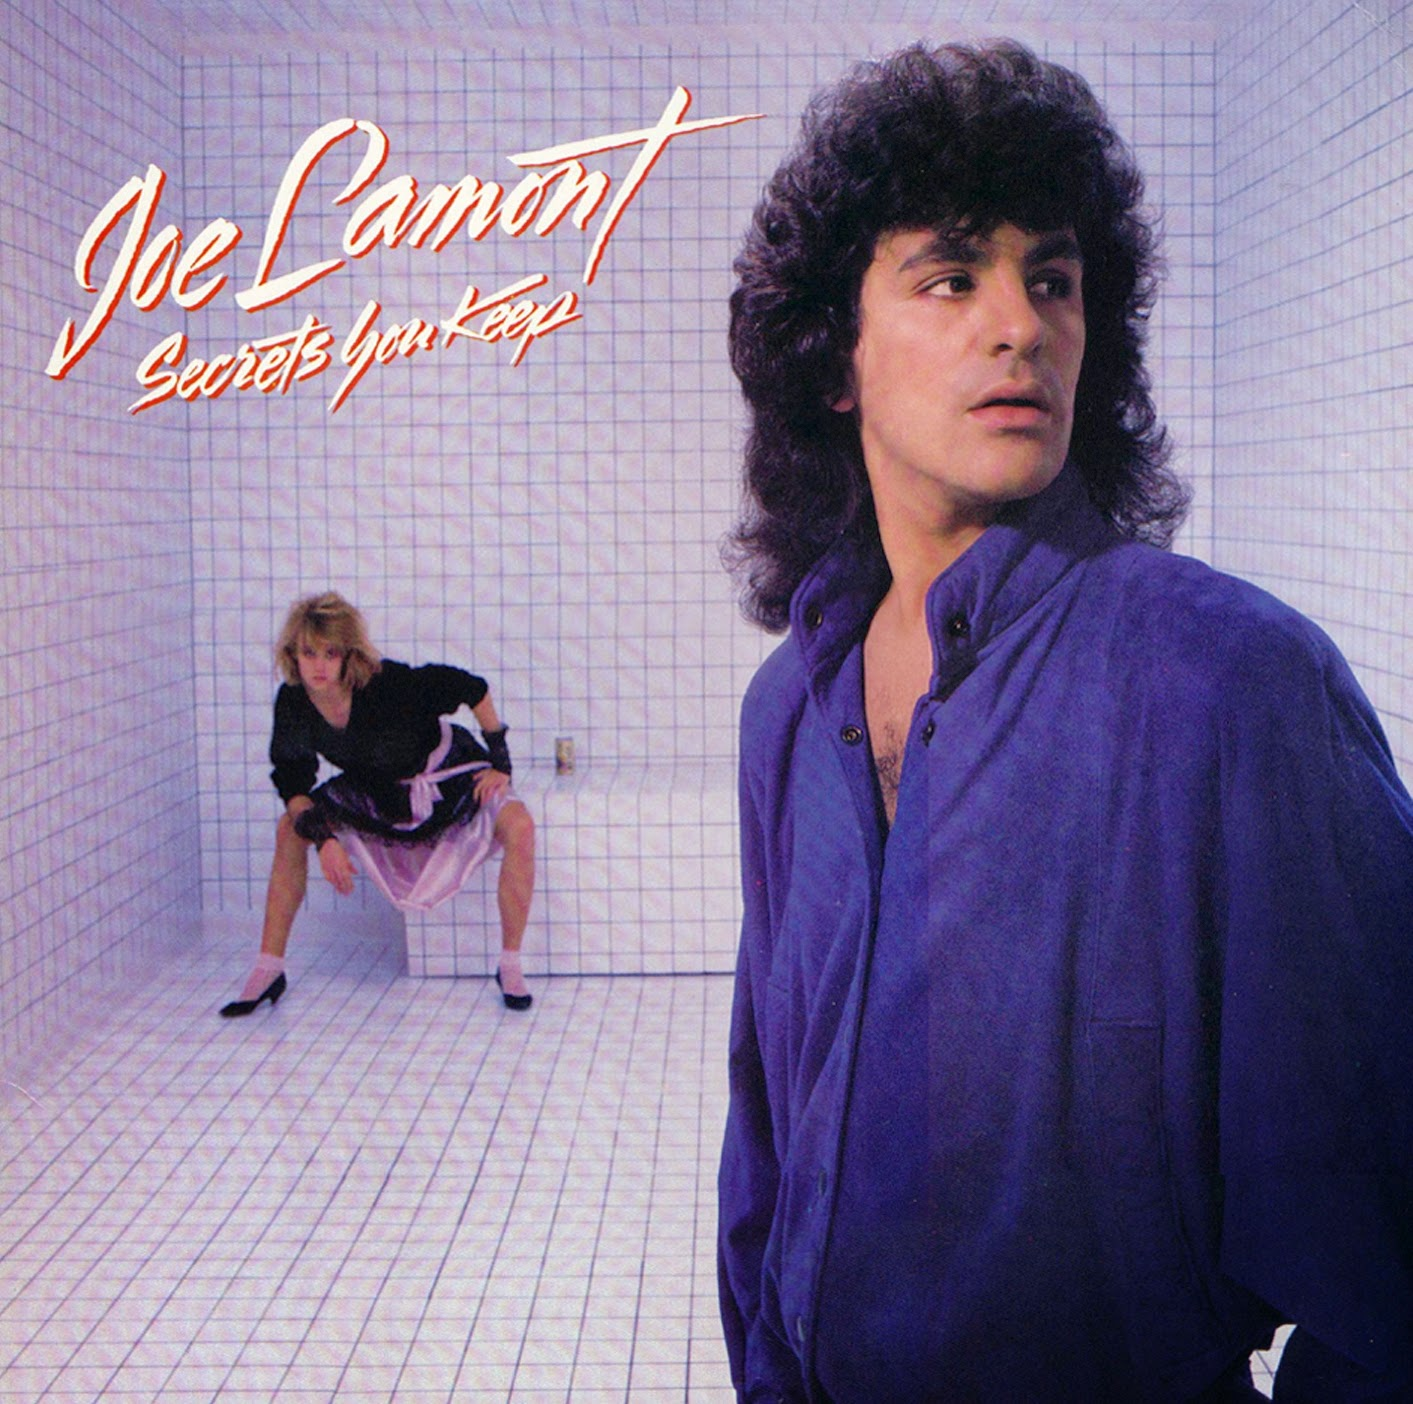 Joe Lamont Secrets you keep 1985 aor melodic rock